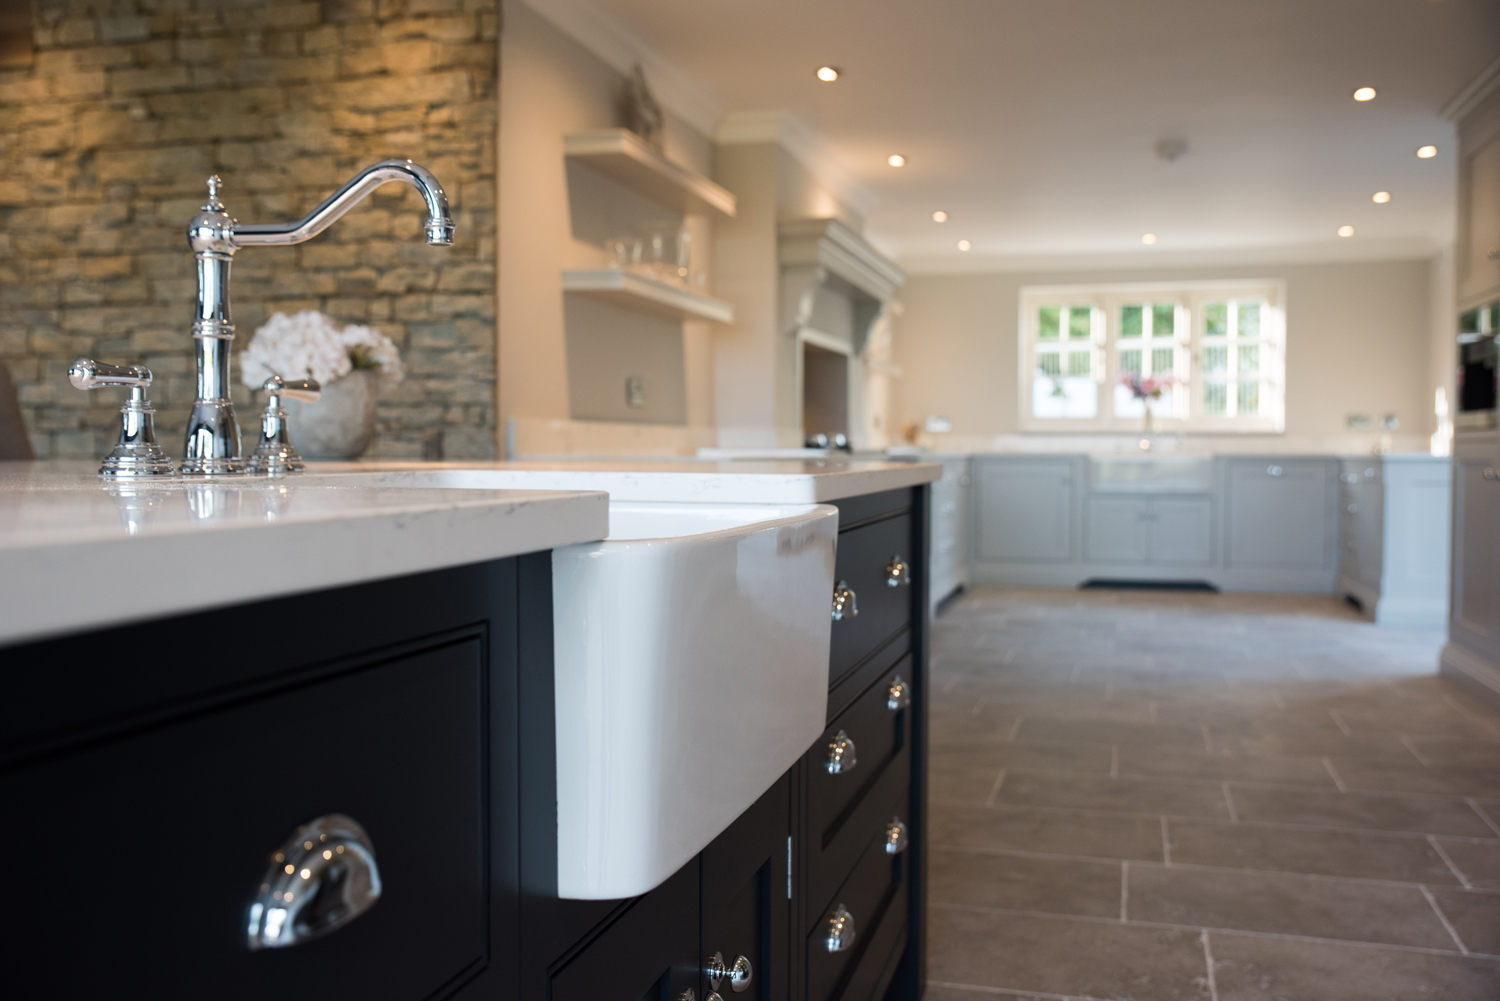 When Tony And Gemma Morgan From Cowbridge Were Looking To Design Their New  Kitchen In Their Fully Remodelled Home, They Chose Bespoke Kitchens And  Furniture ...